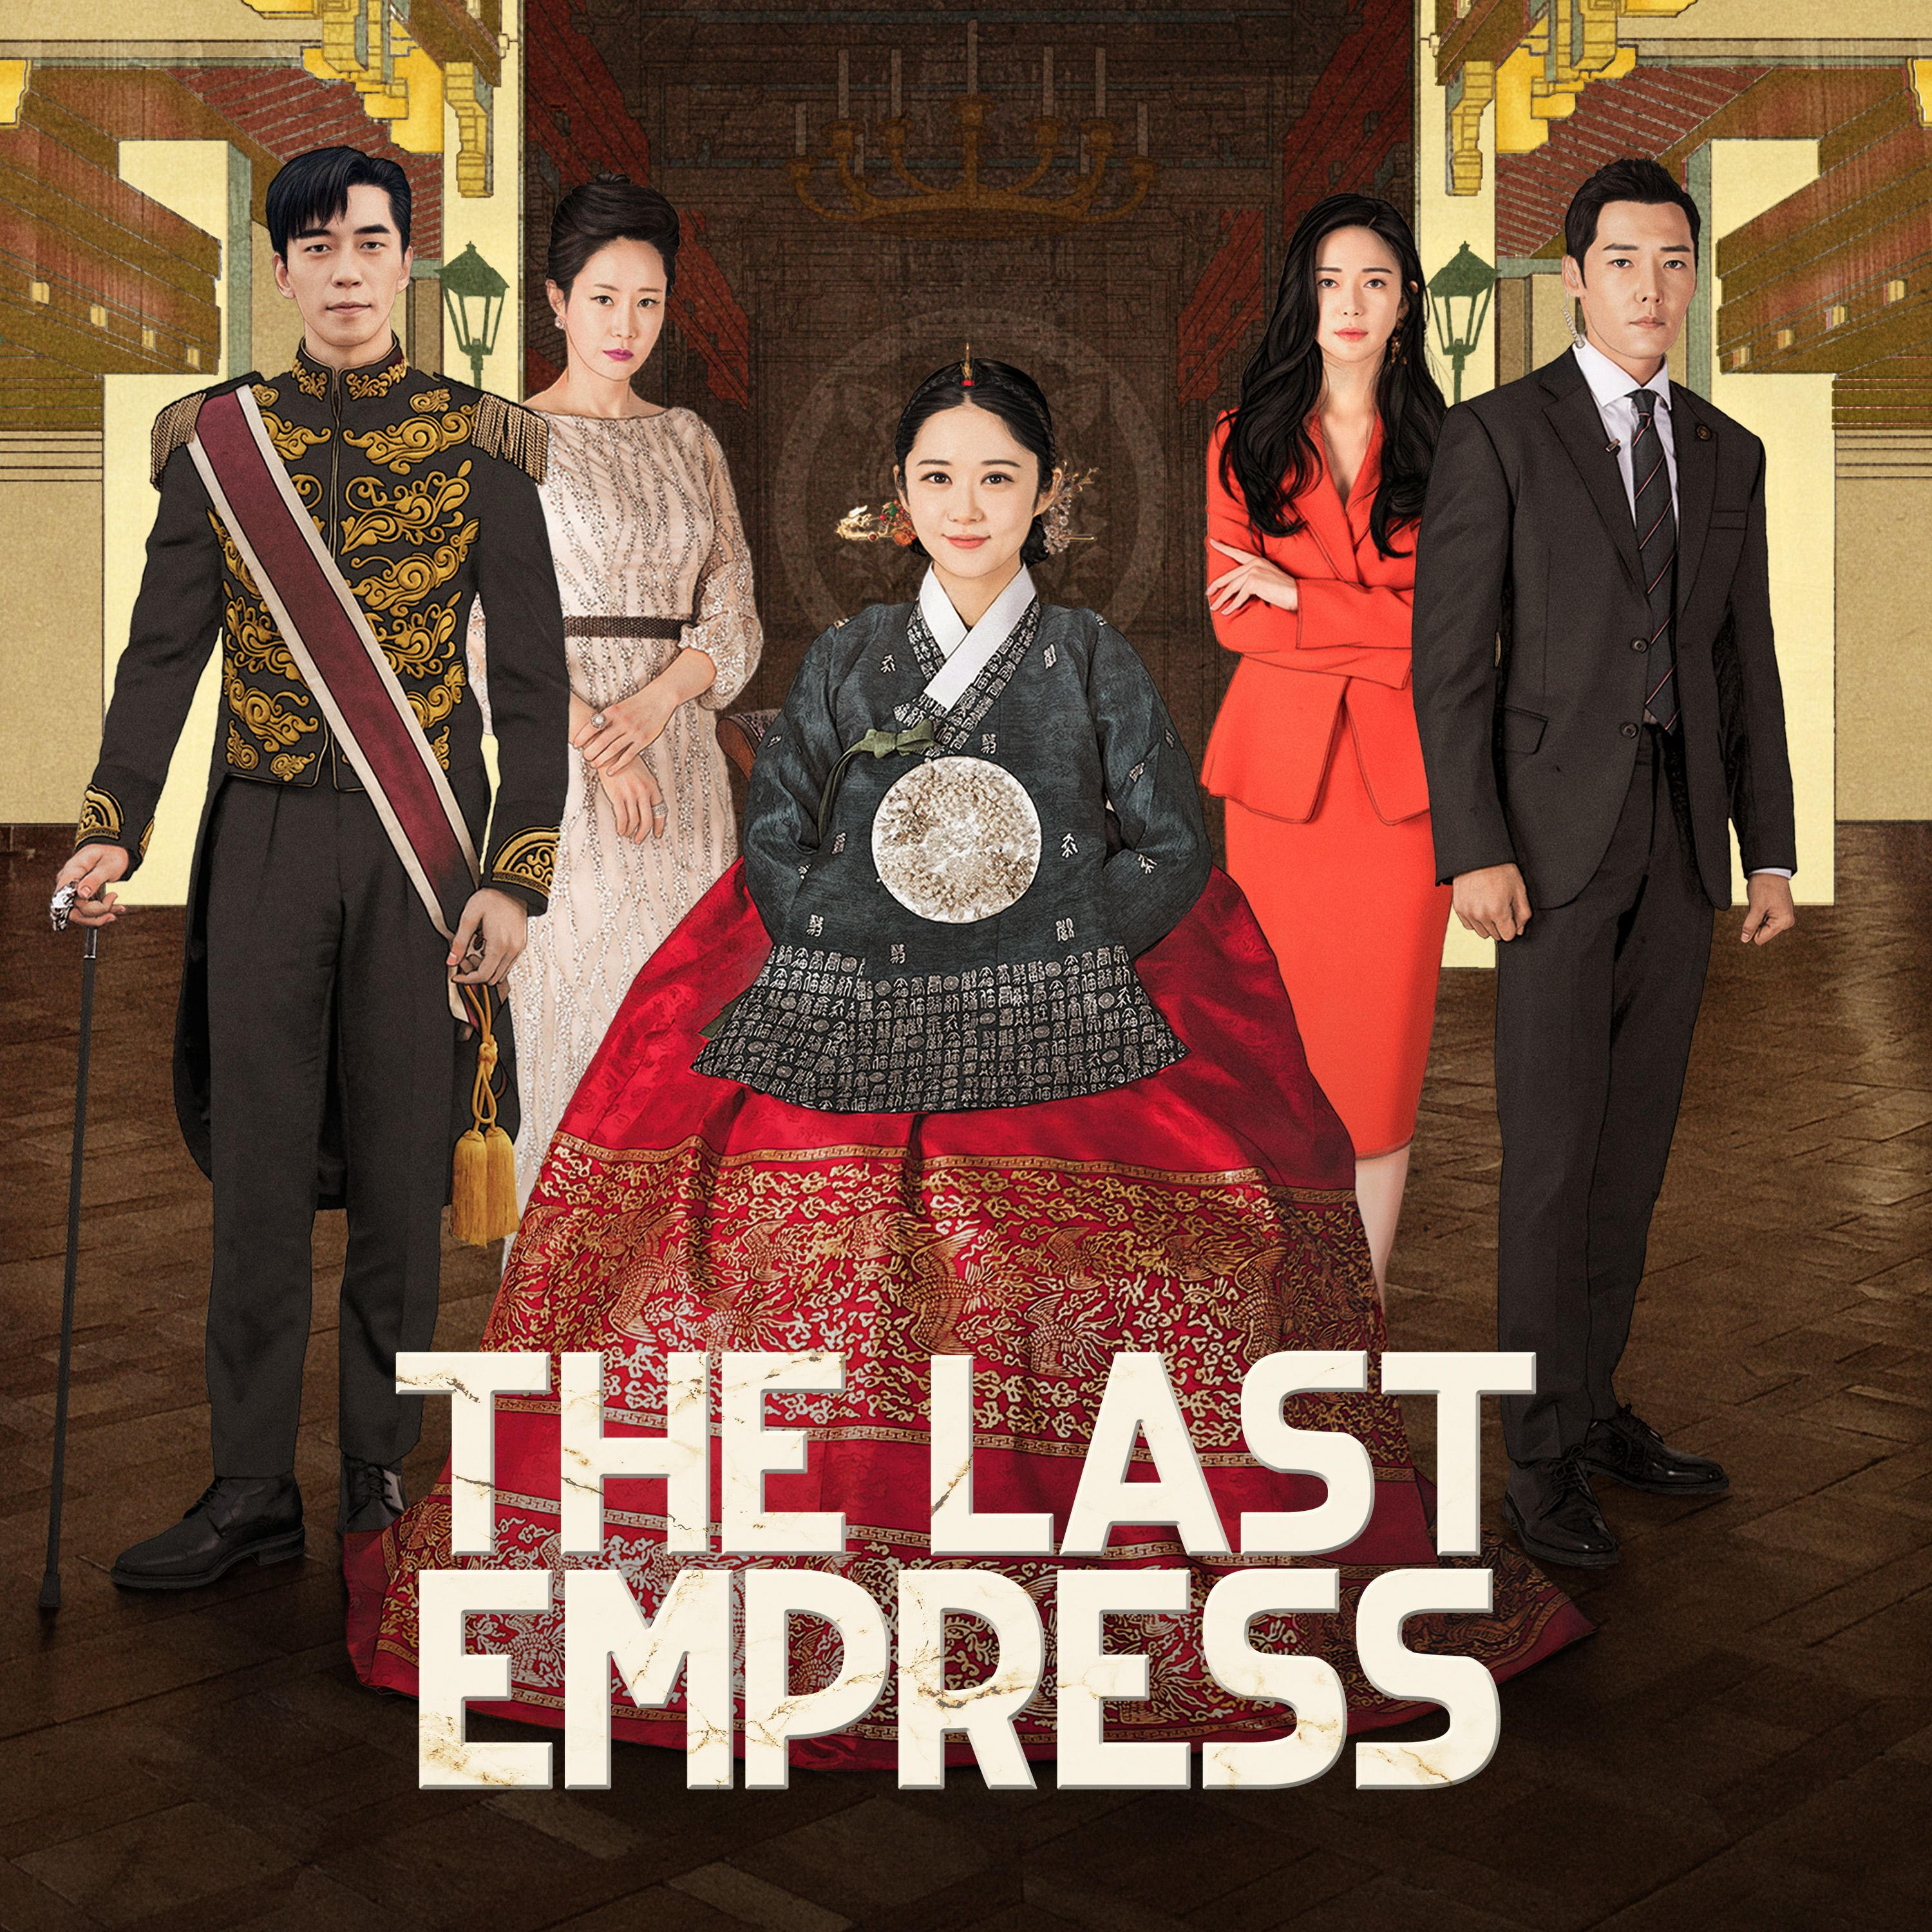 Trailer 3: The Last Empress - Trailers - Watch Full Episodes Free